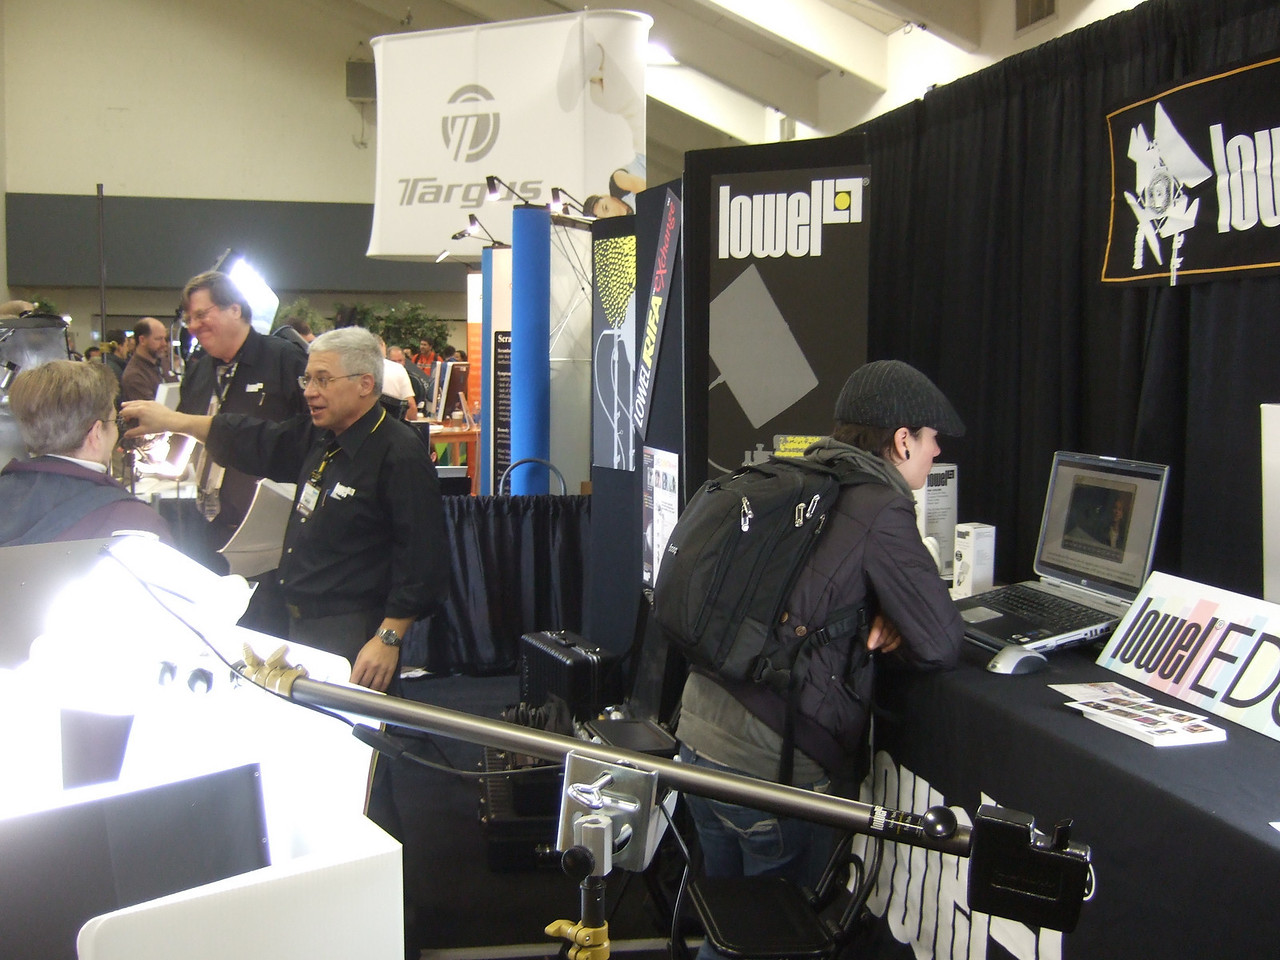 Lots of booths showed professional lighting for still and video.